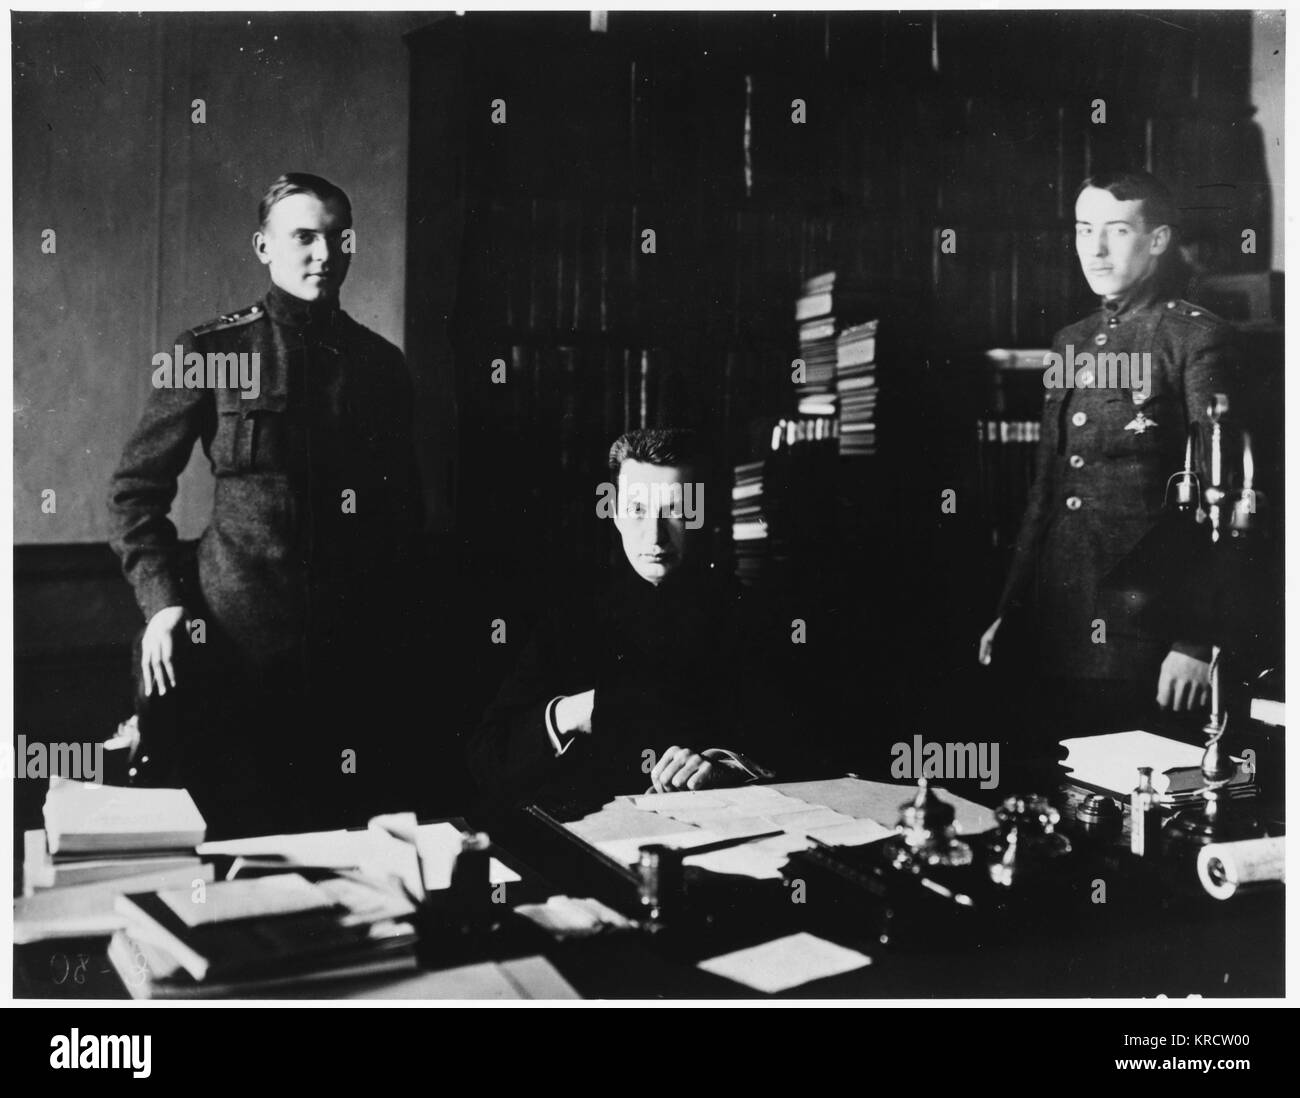 ALEKSANDR FYODOROVICH KERENSKY Russian Revolutionary leader with two of his assistants in 1917 Date: 1881 - 1970 - Stock Image